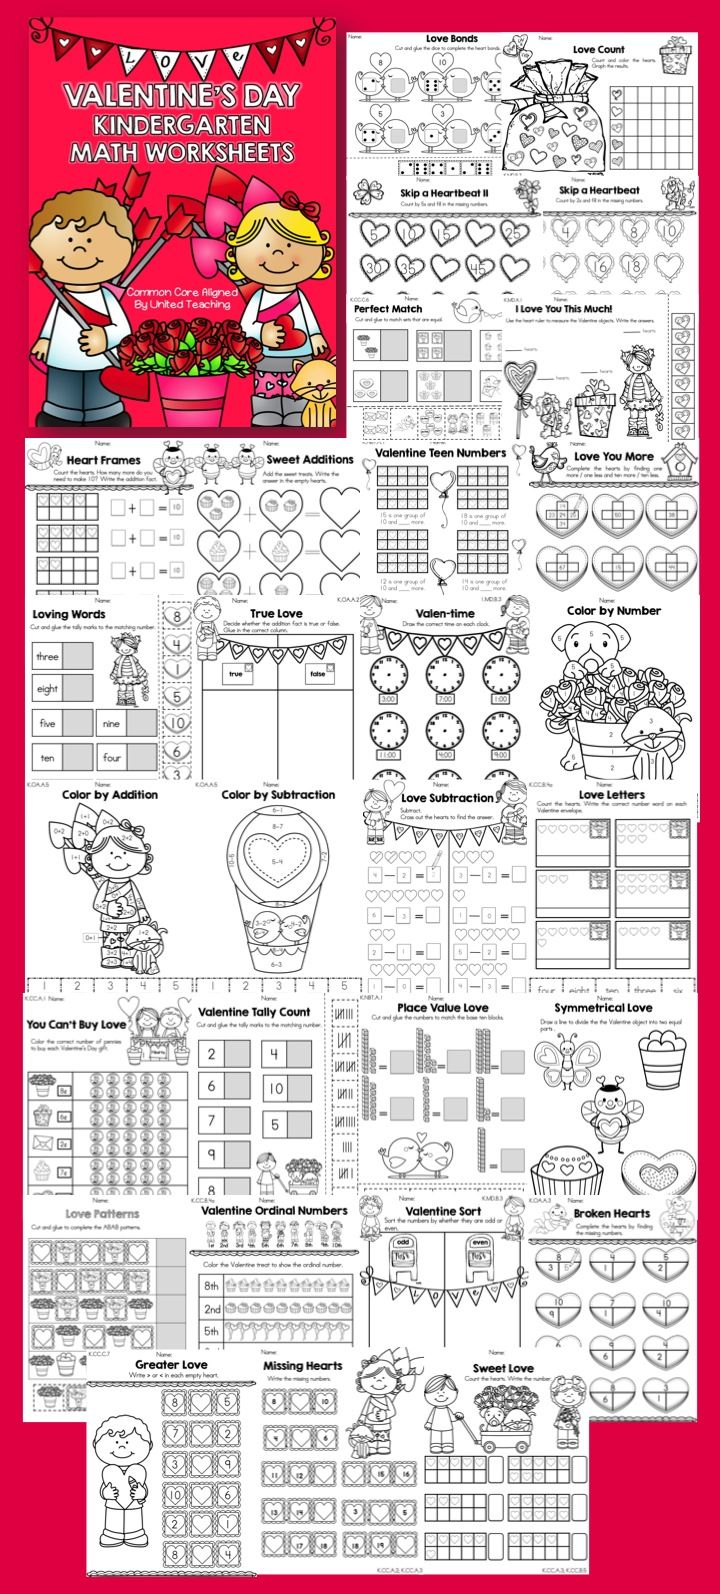 552 best kindergarten math images on pinterest kindergarten math valentines day kindergarten math worksheets robcynllc Images